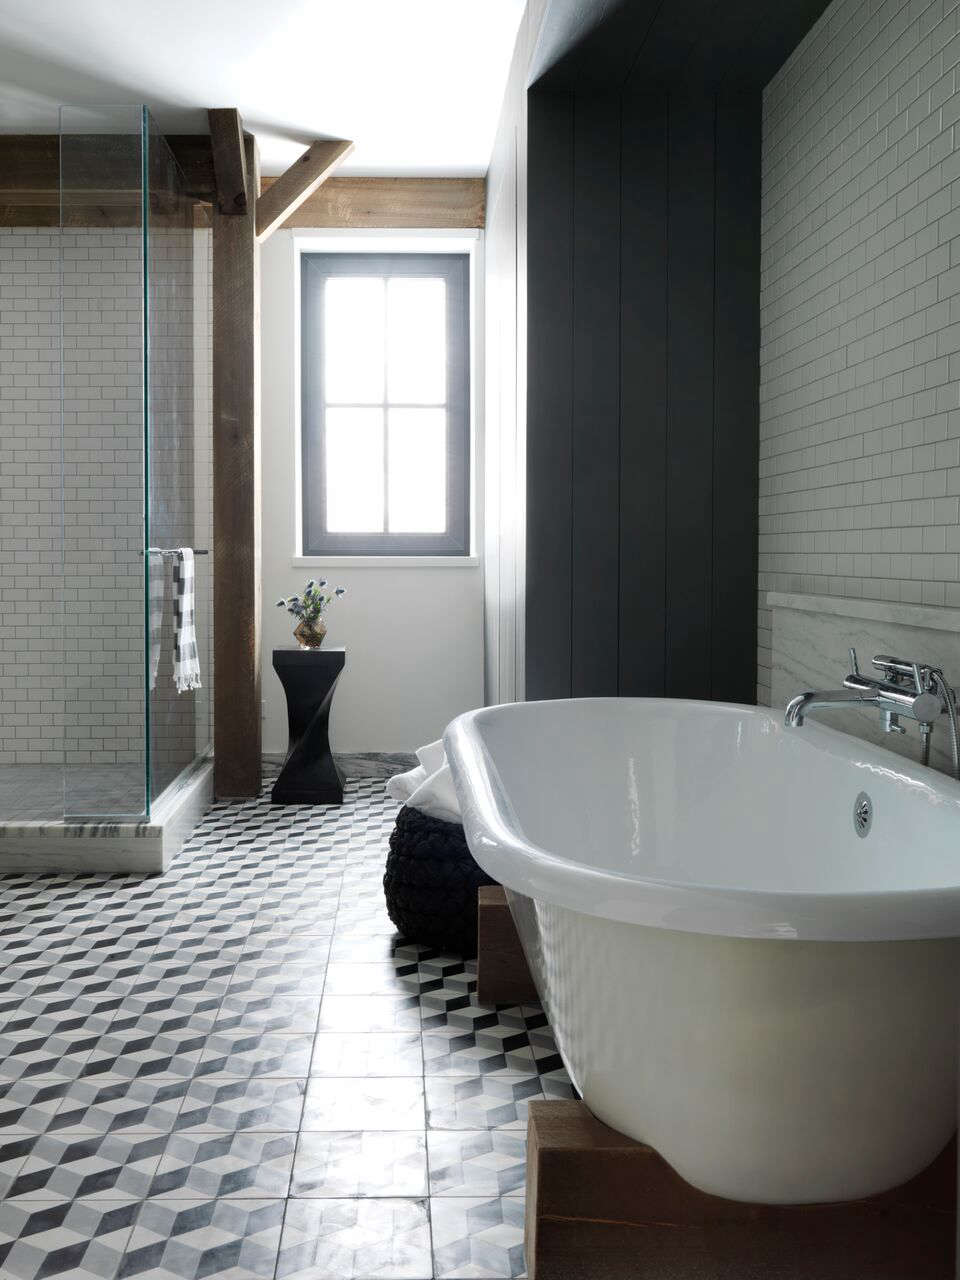 Master Bath With Block Patterned Cement Tiles By Barliswedlick At Fox Hall A Pive